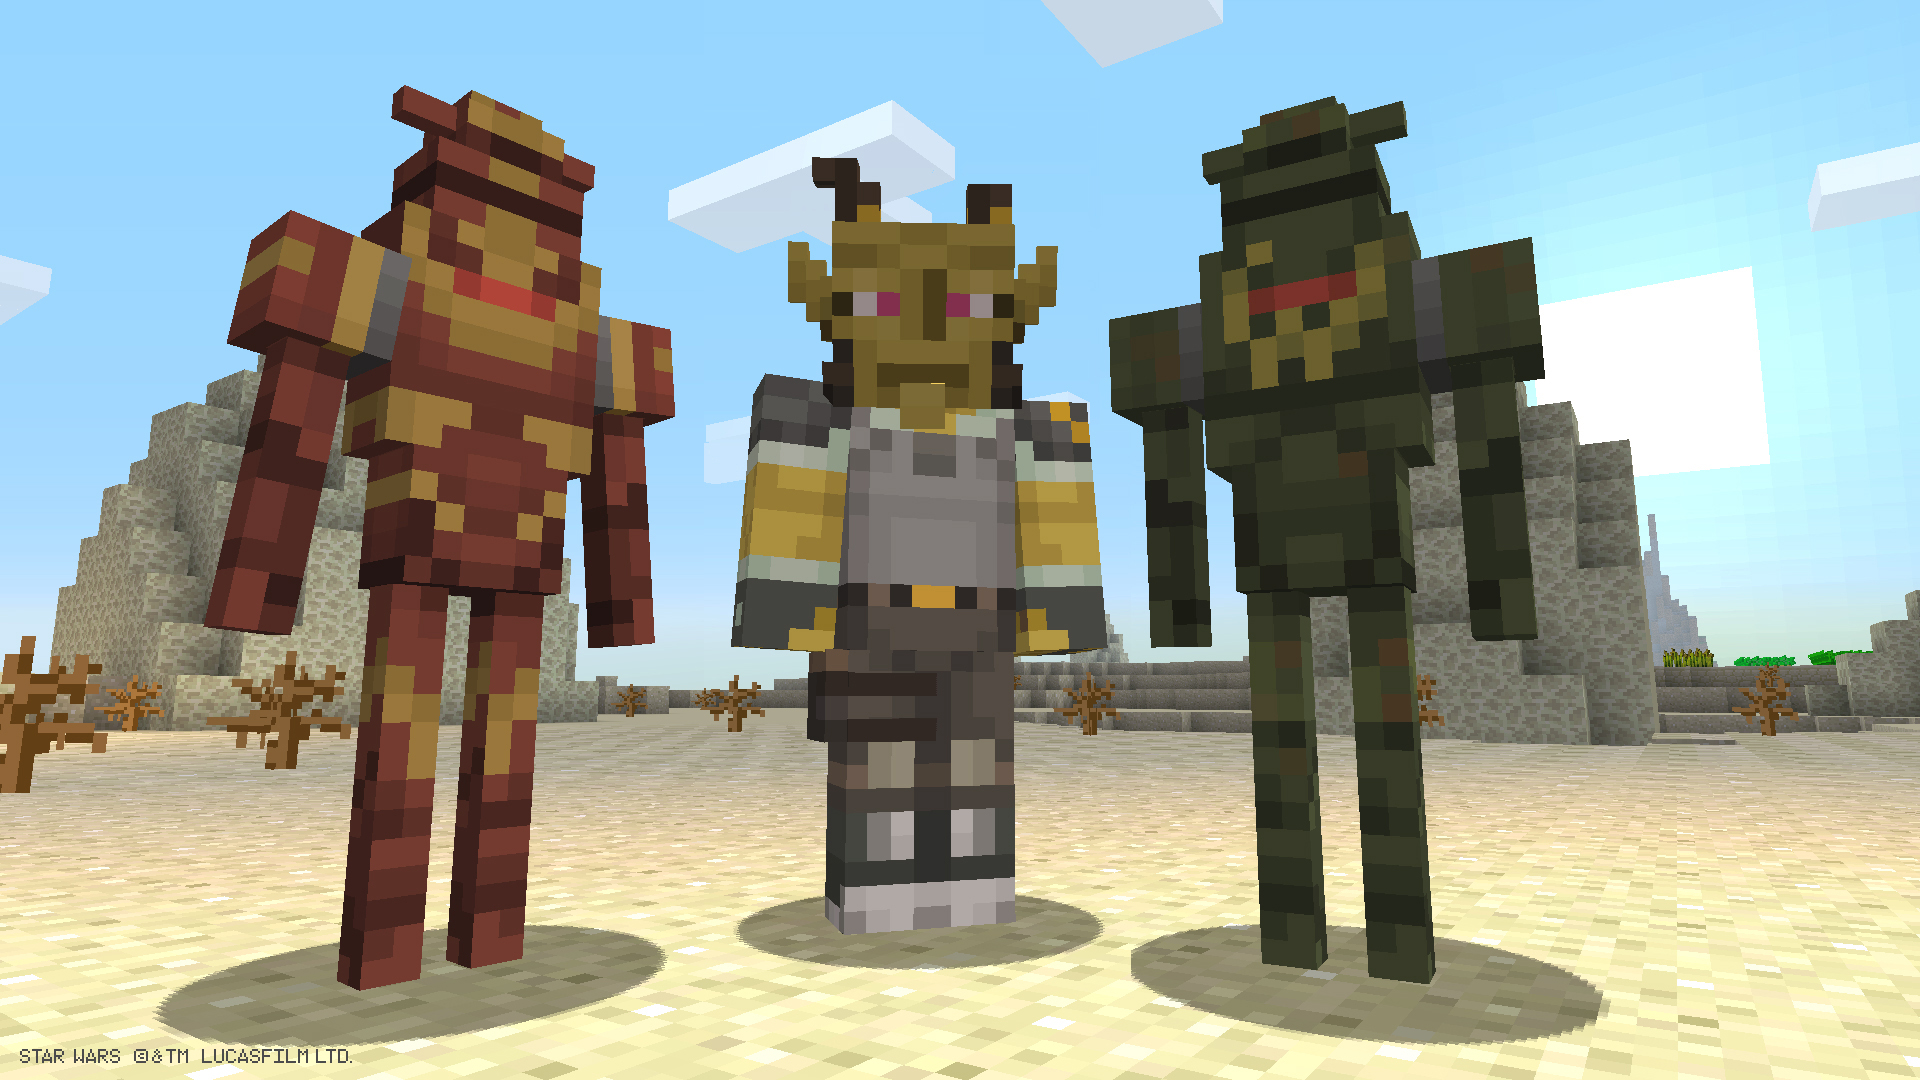 Star Wars Prequel Skins Come To Minecraft Ar12gaming